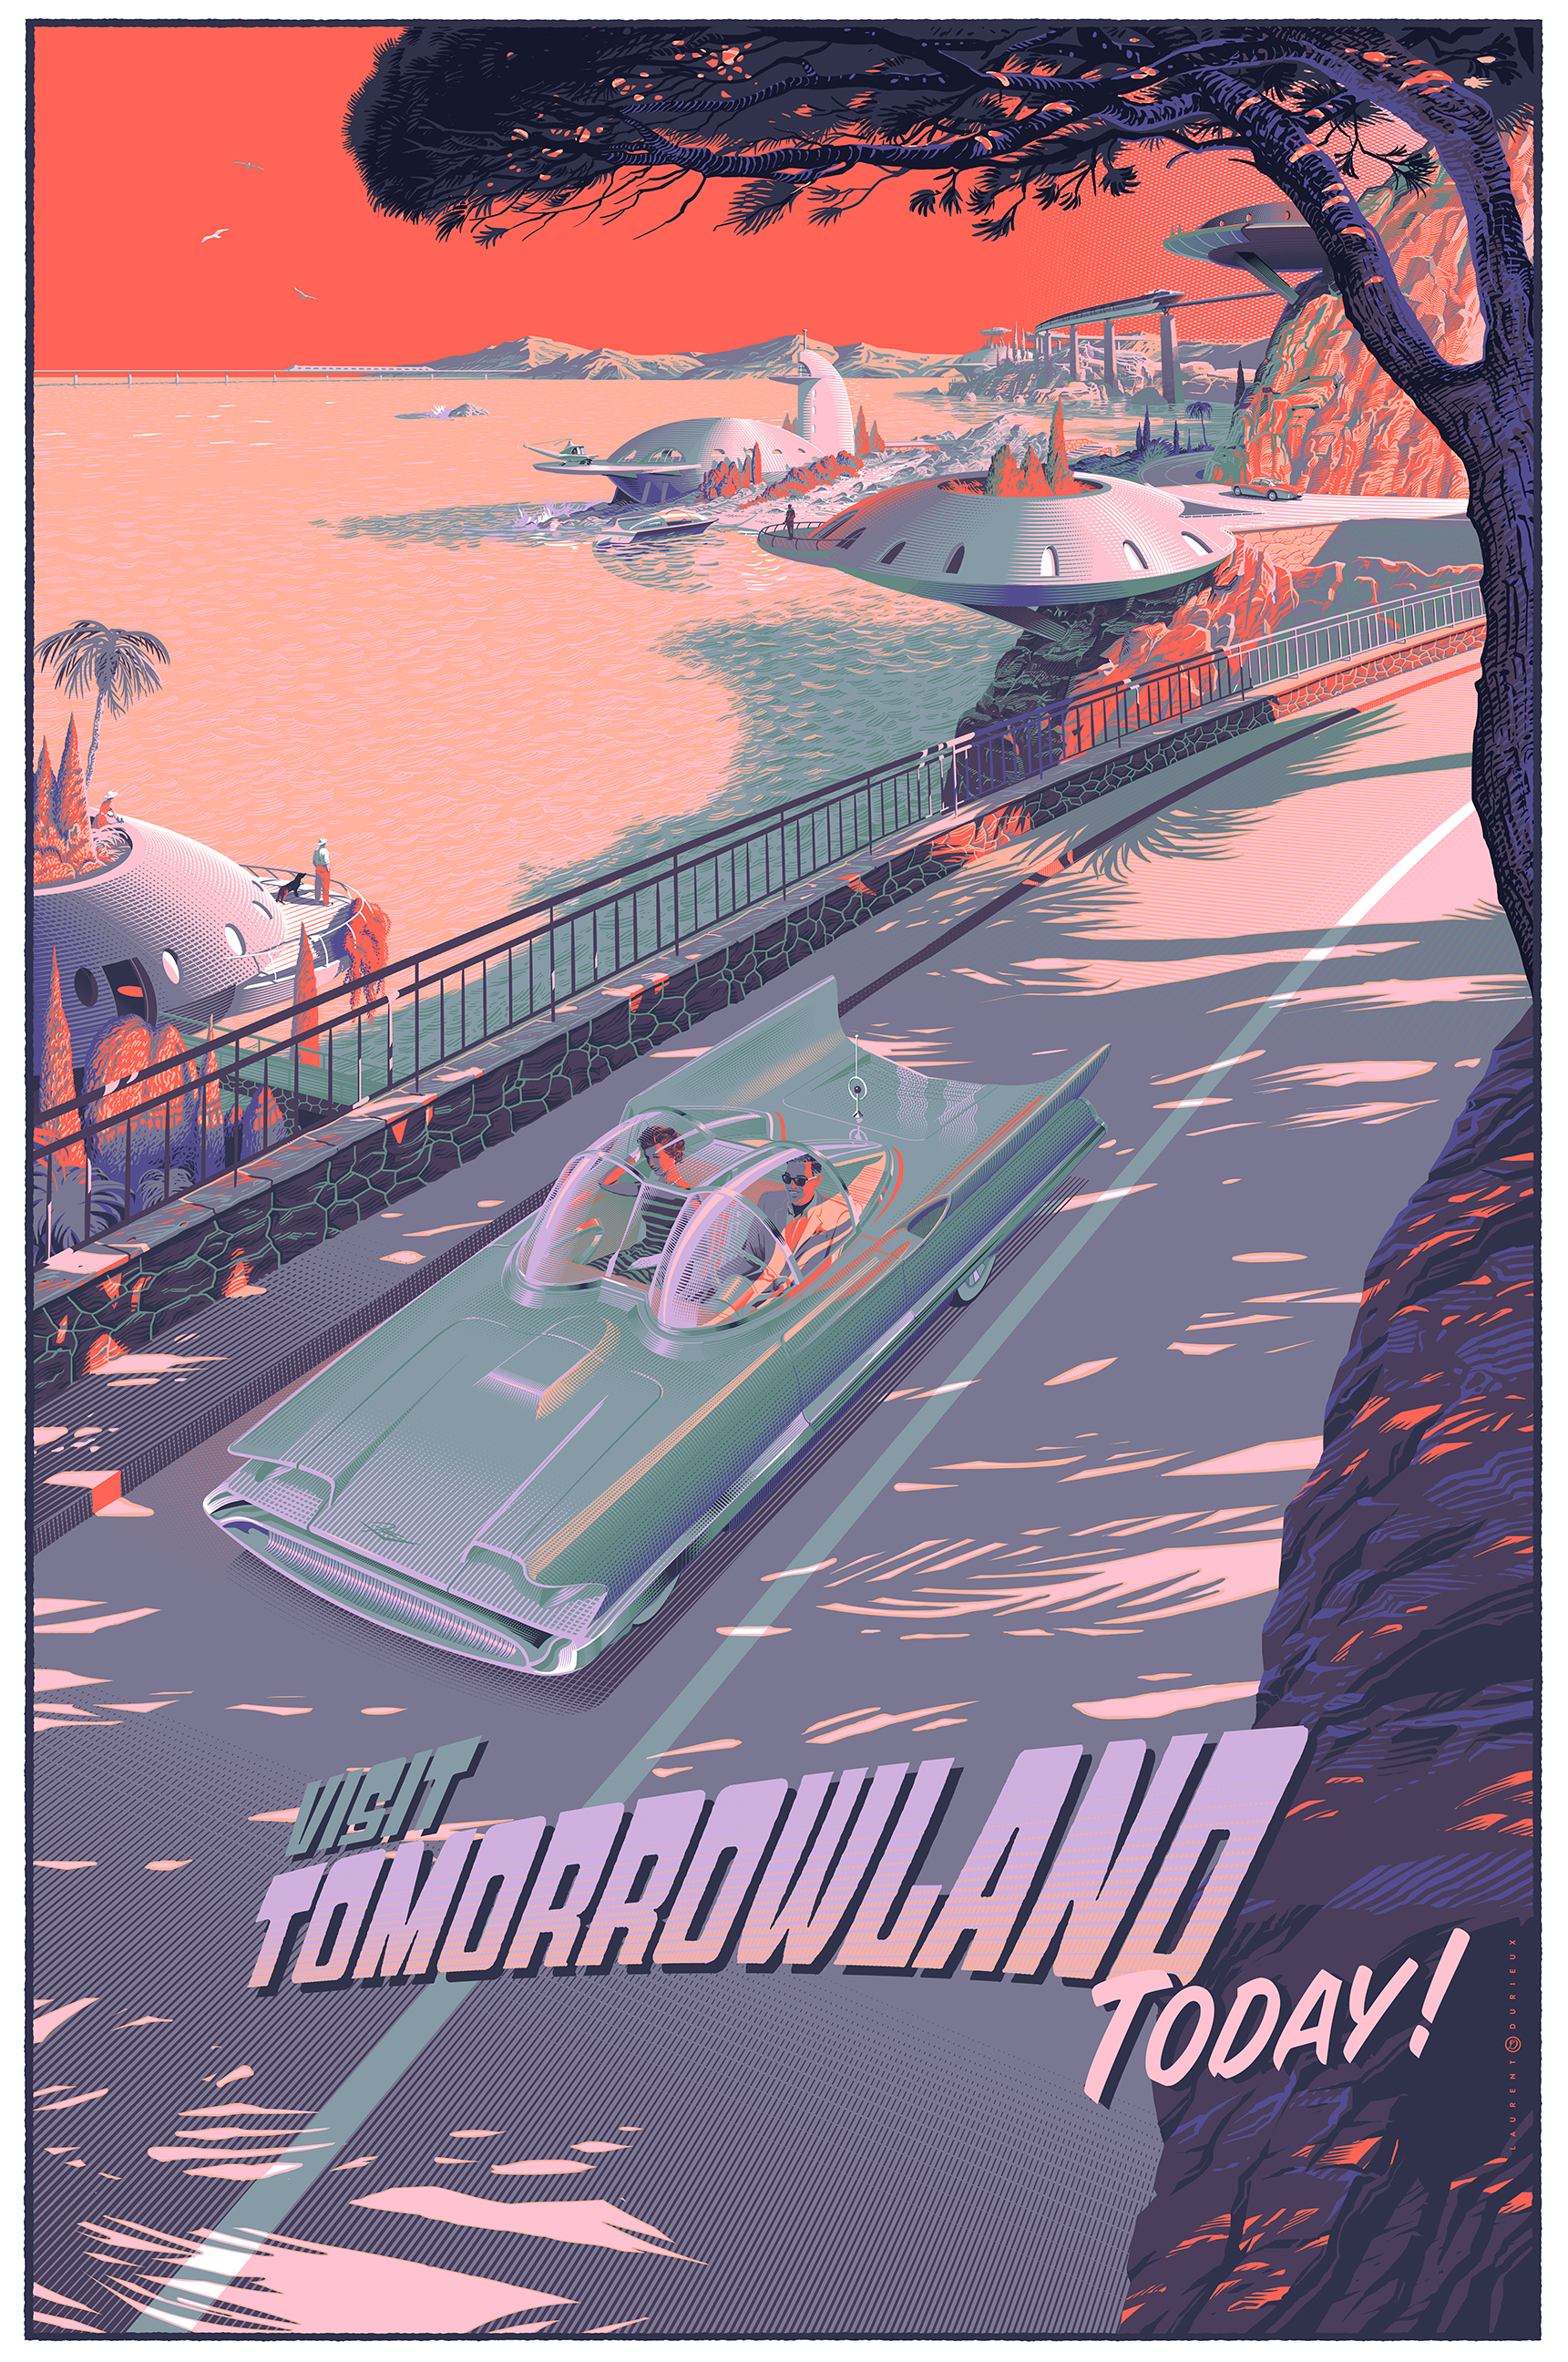 """Visit Tomorrowland Today!"" by Laurent Durieux.  24"" x 36"" 11-color Screenprint.  Ed of 100 S/N.  75 Euro ($84) (variant)"